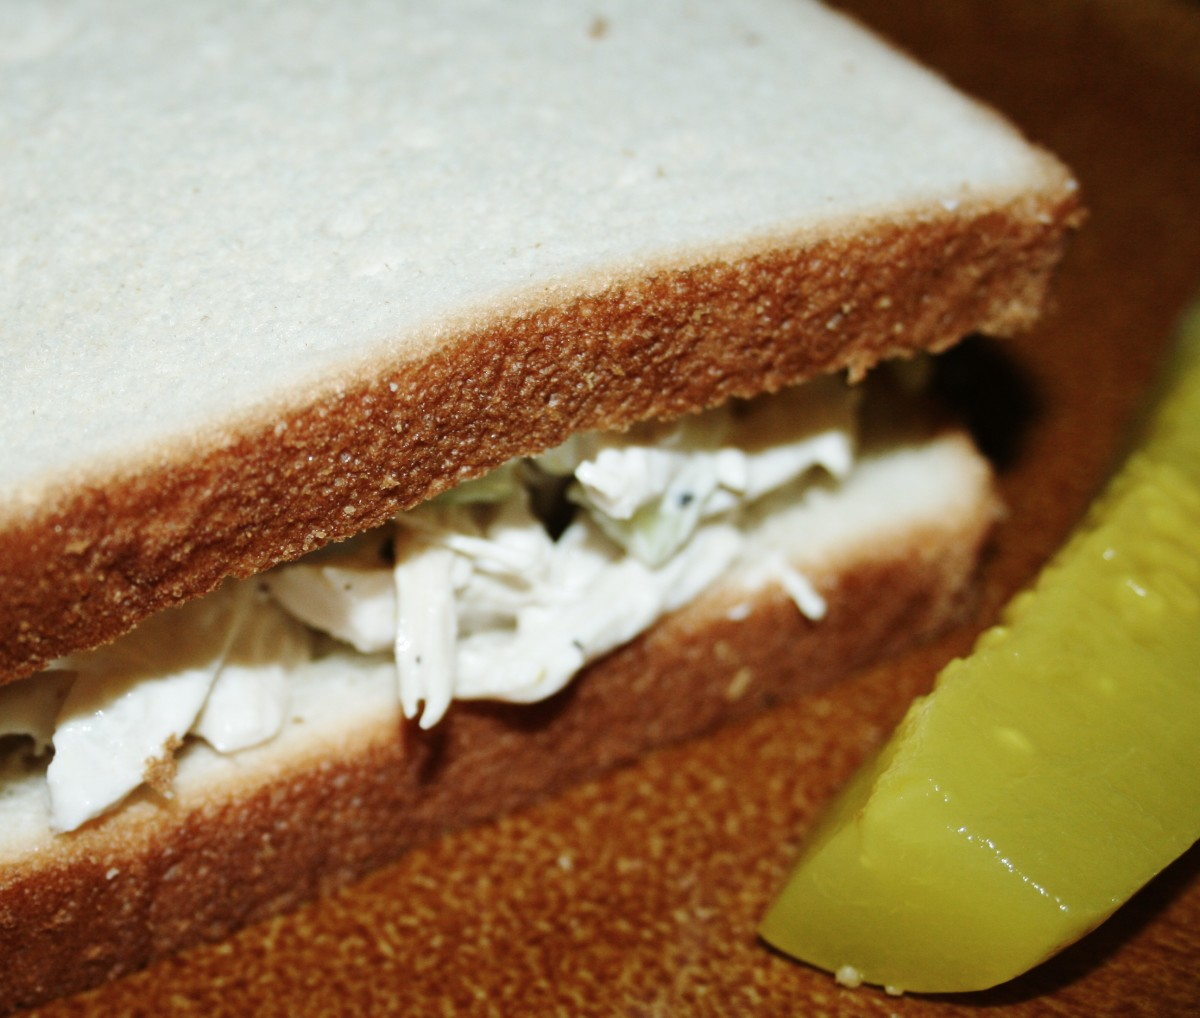 A chicken salad sandwich with pickle on the side, great for lunch!